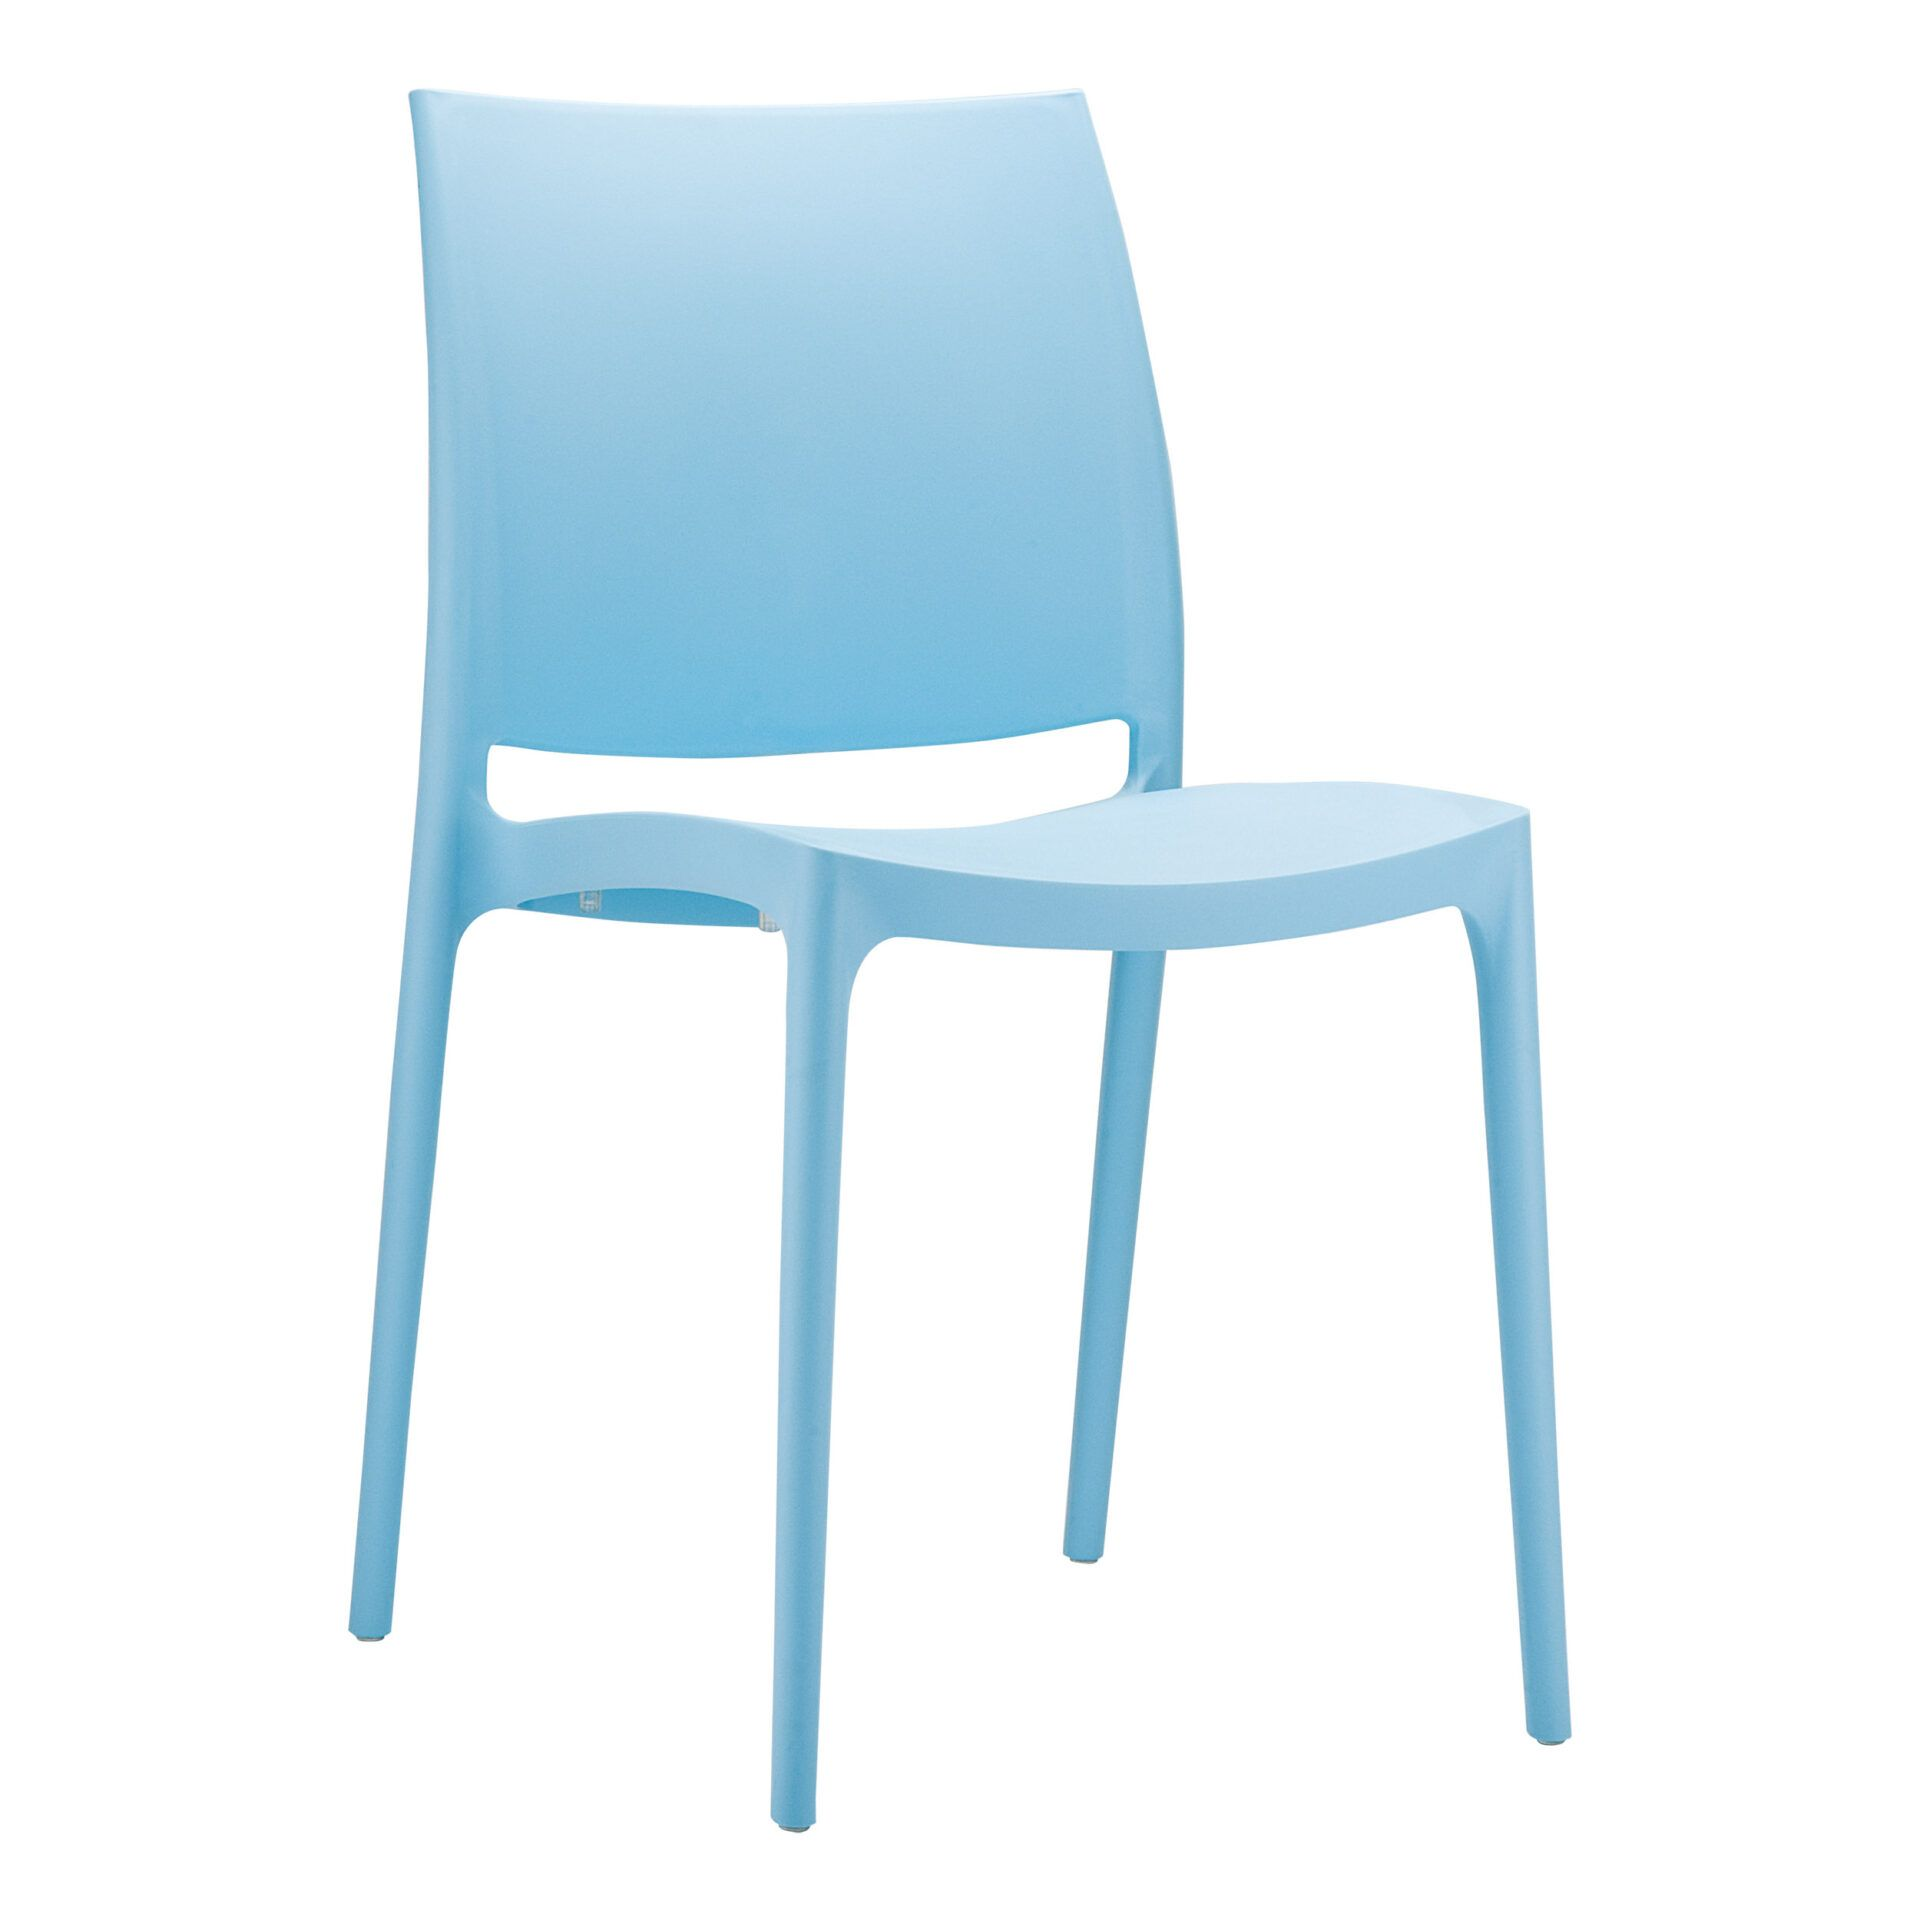 outdoor dining maya chair blue front side